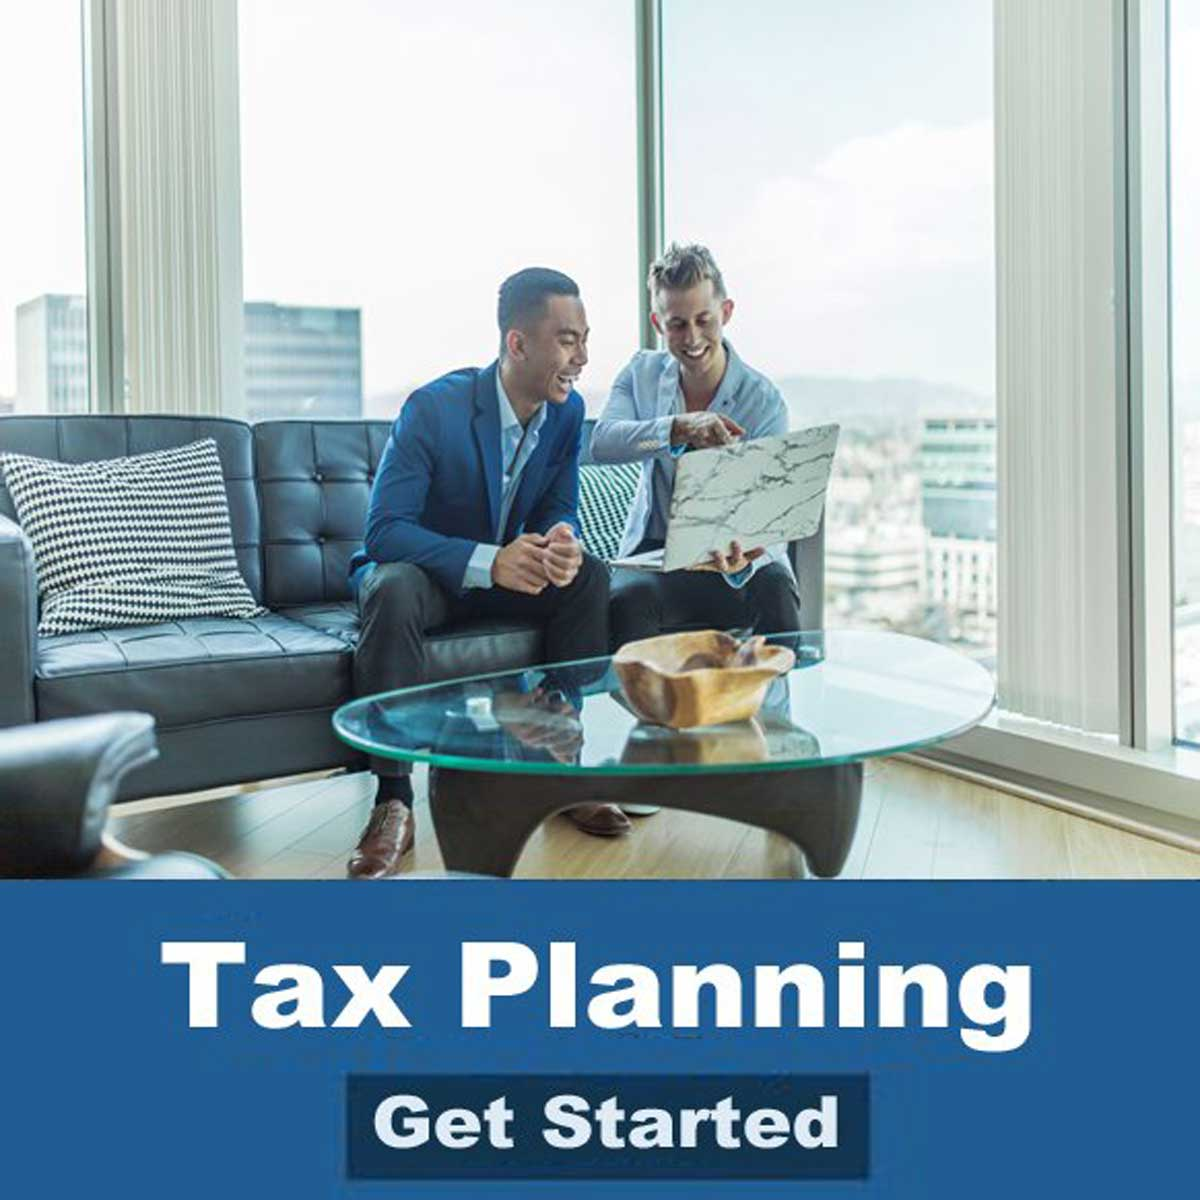 Income tax help and planning from taxhelpnow